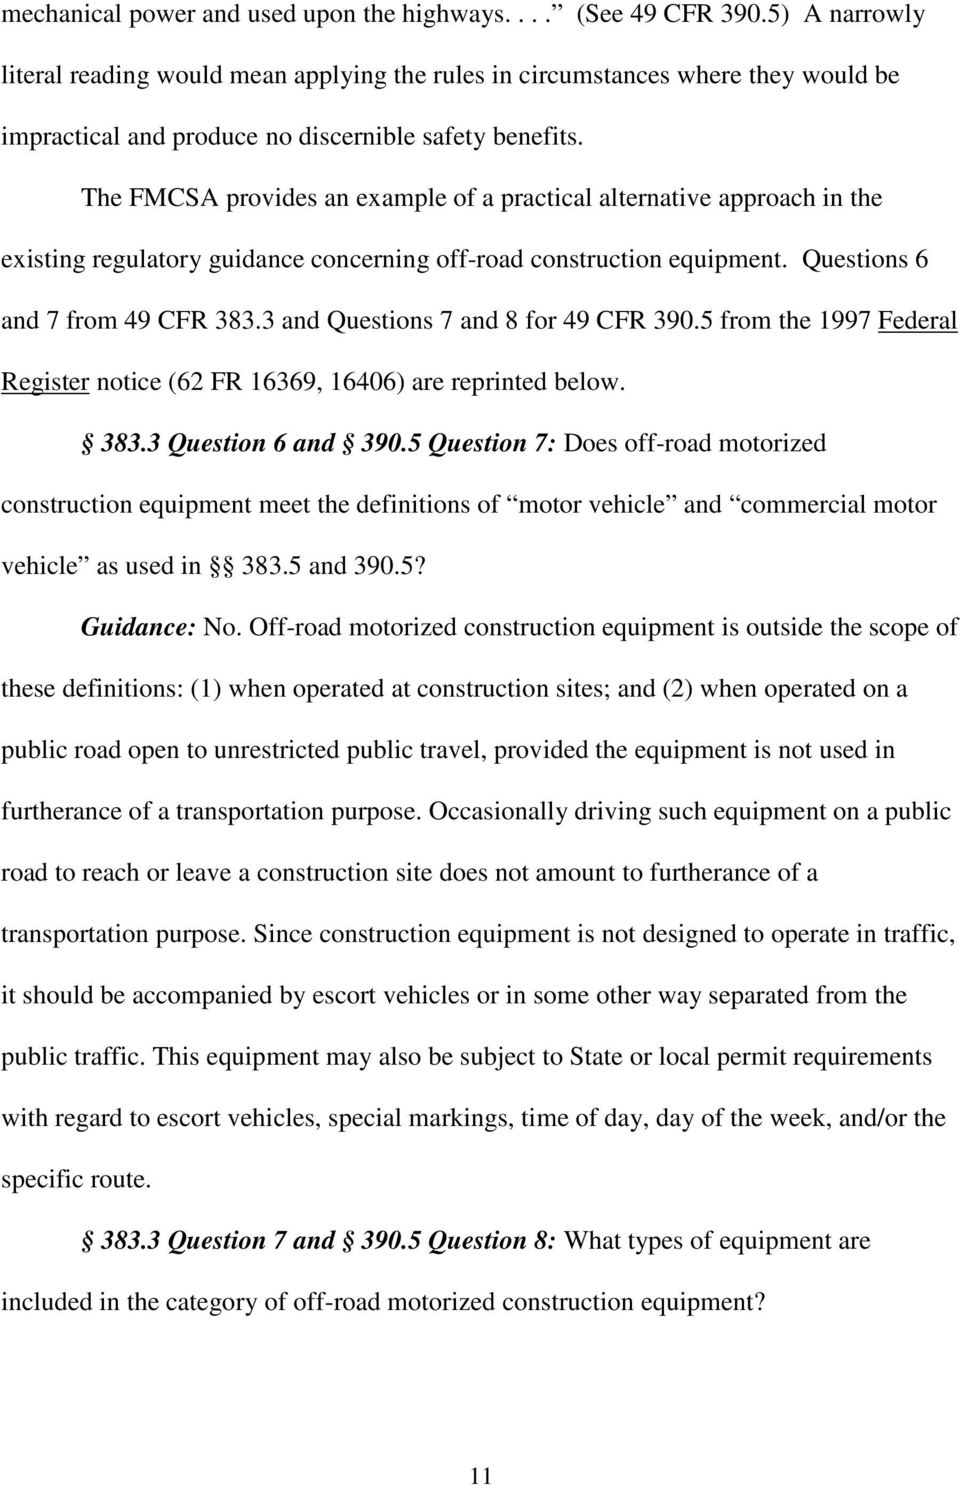 The FMCSA provides an example of a practical alternative approach in the existing regulatory guidance concerning off-road construction equipment. Questions 6 and 7 from 49 CFR 383.